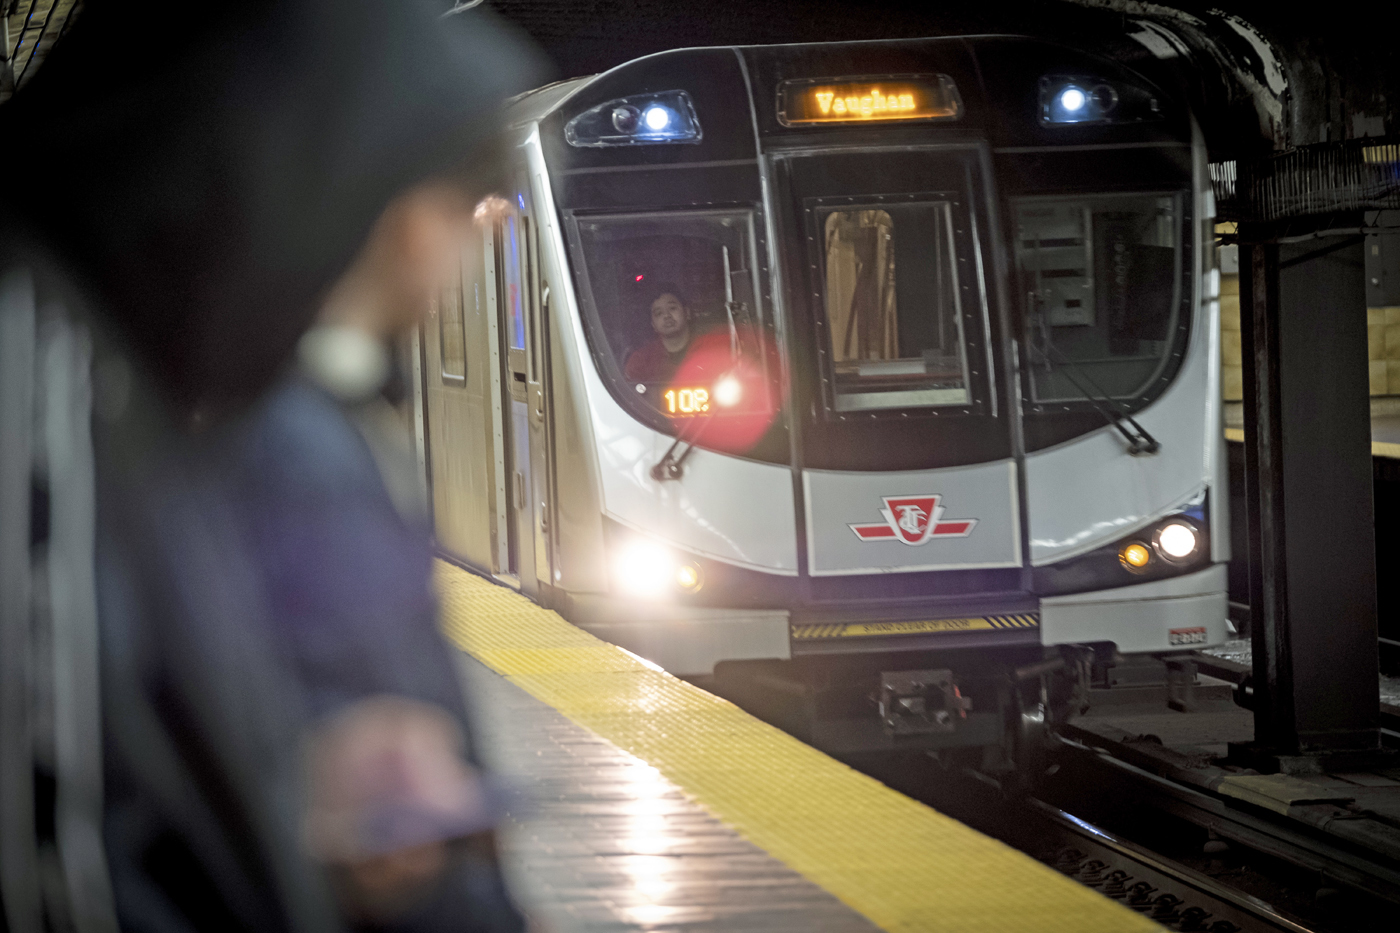 The TTC is looking at 'engineered solutions' as well as other strategies to address the issue of suicide. (Evan Mitsui/CBC)